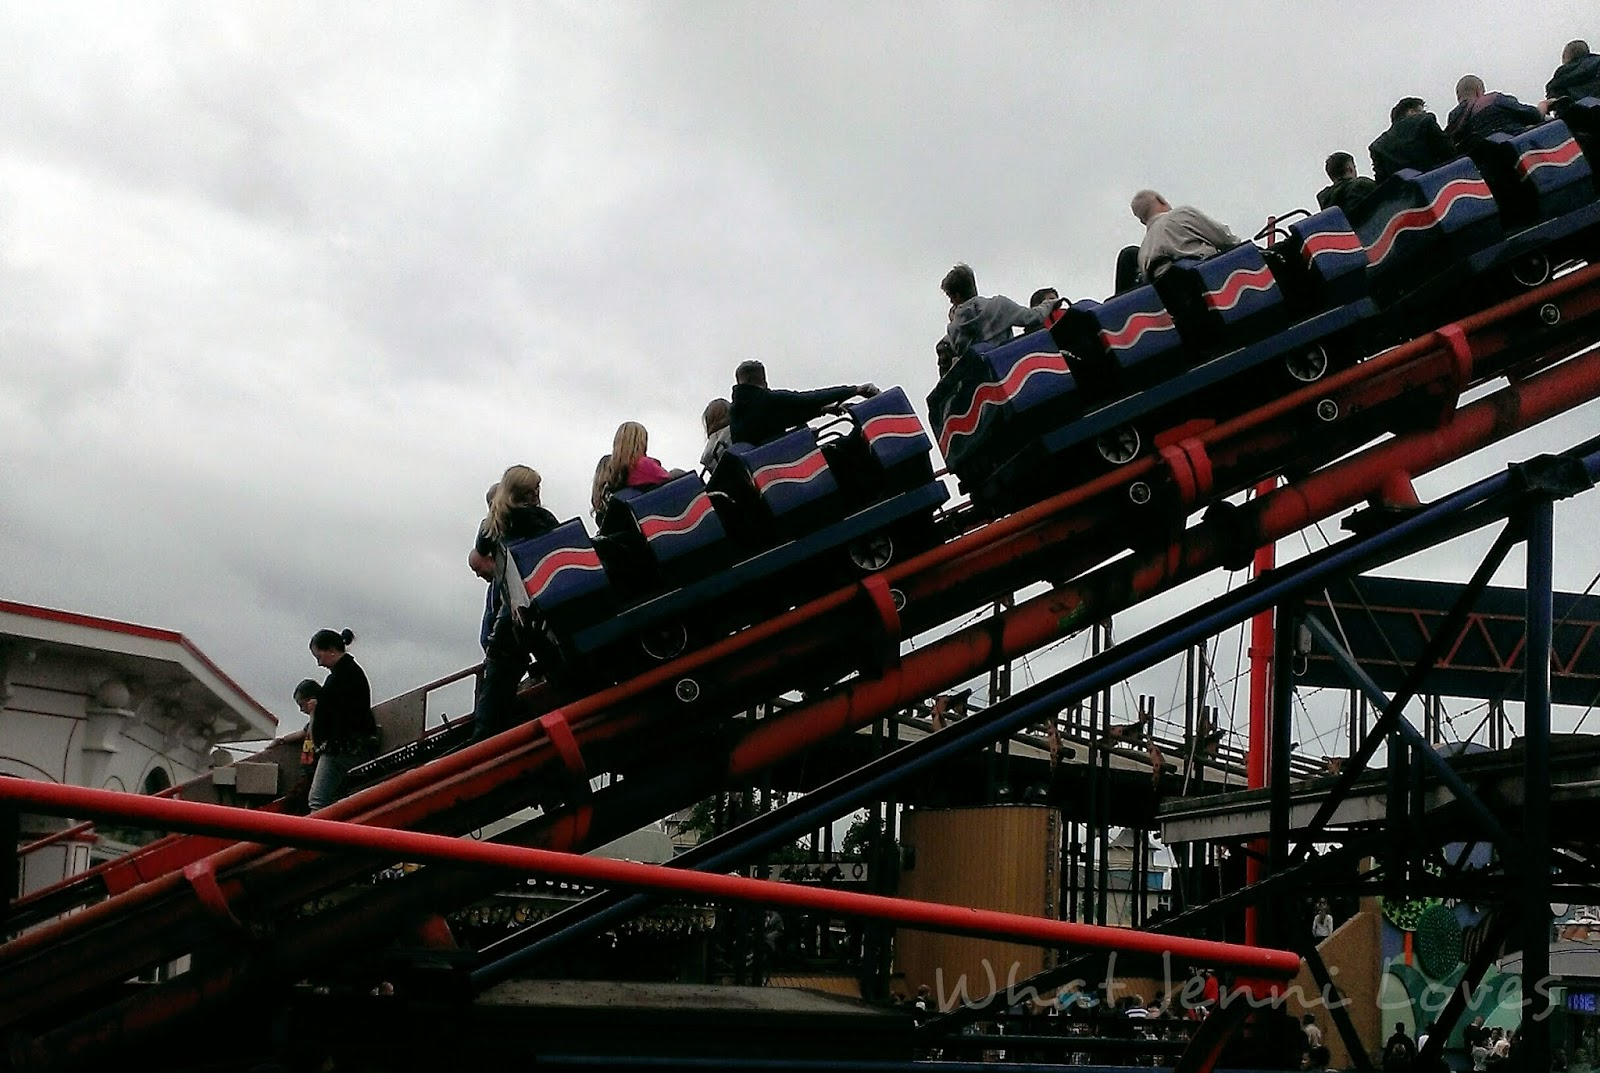 The Big One at Blackpool Pleasure Beach